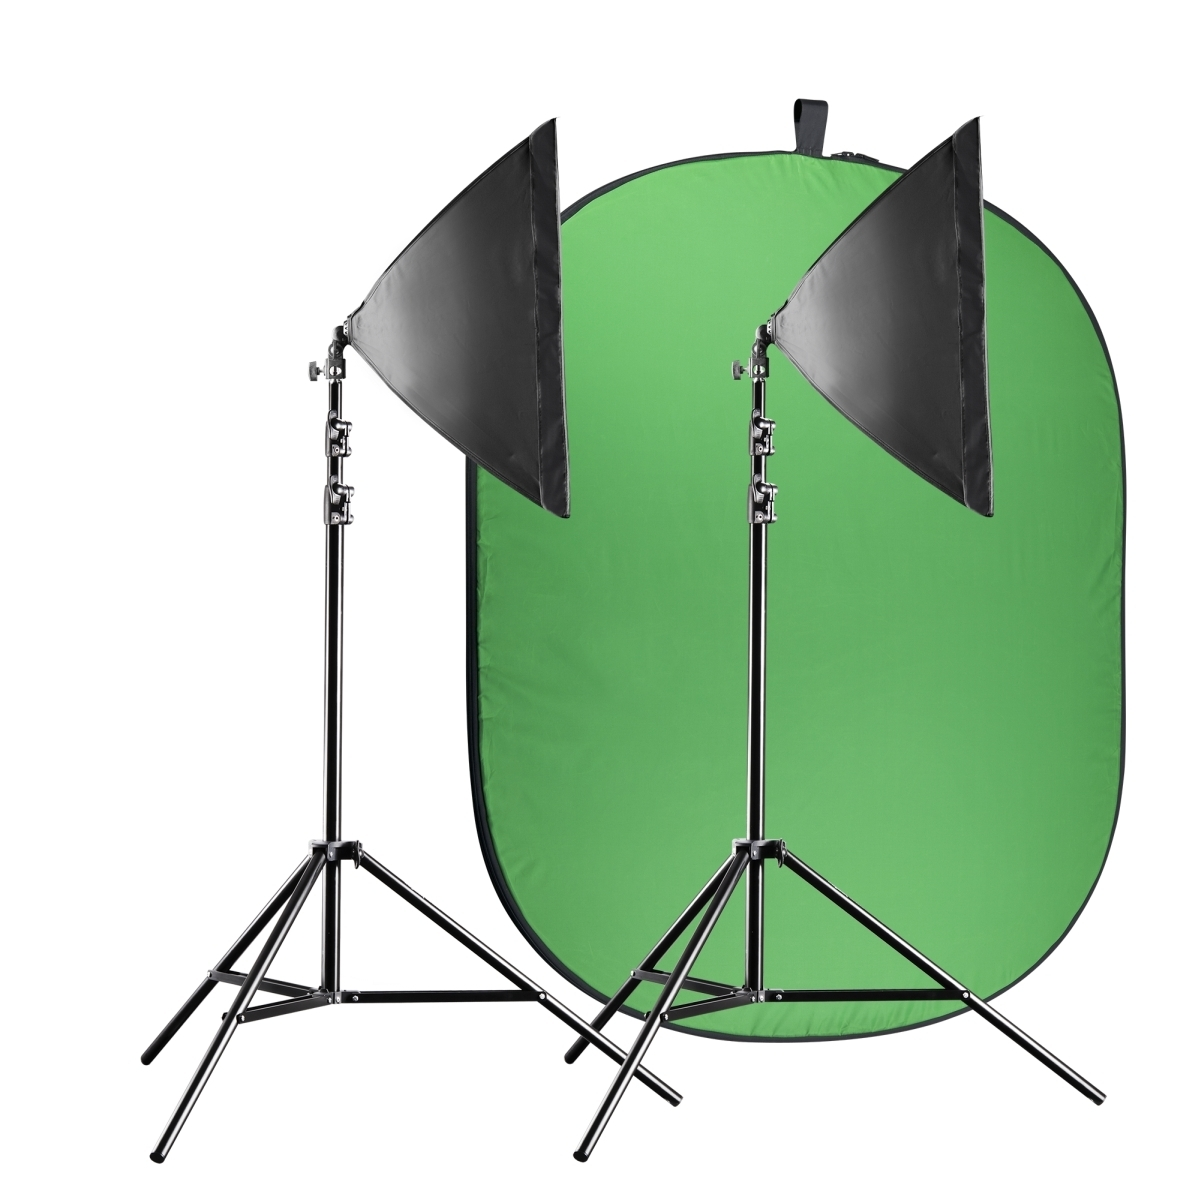 Walimex pro Video Greenscreen Set Einsteiger flexi